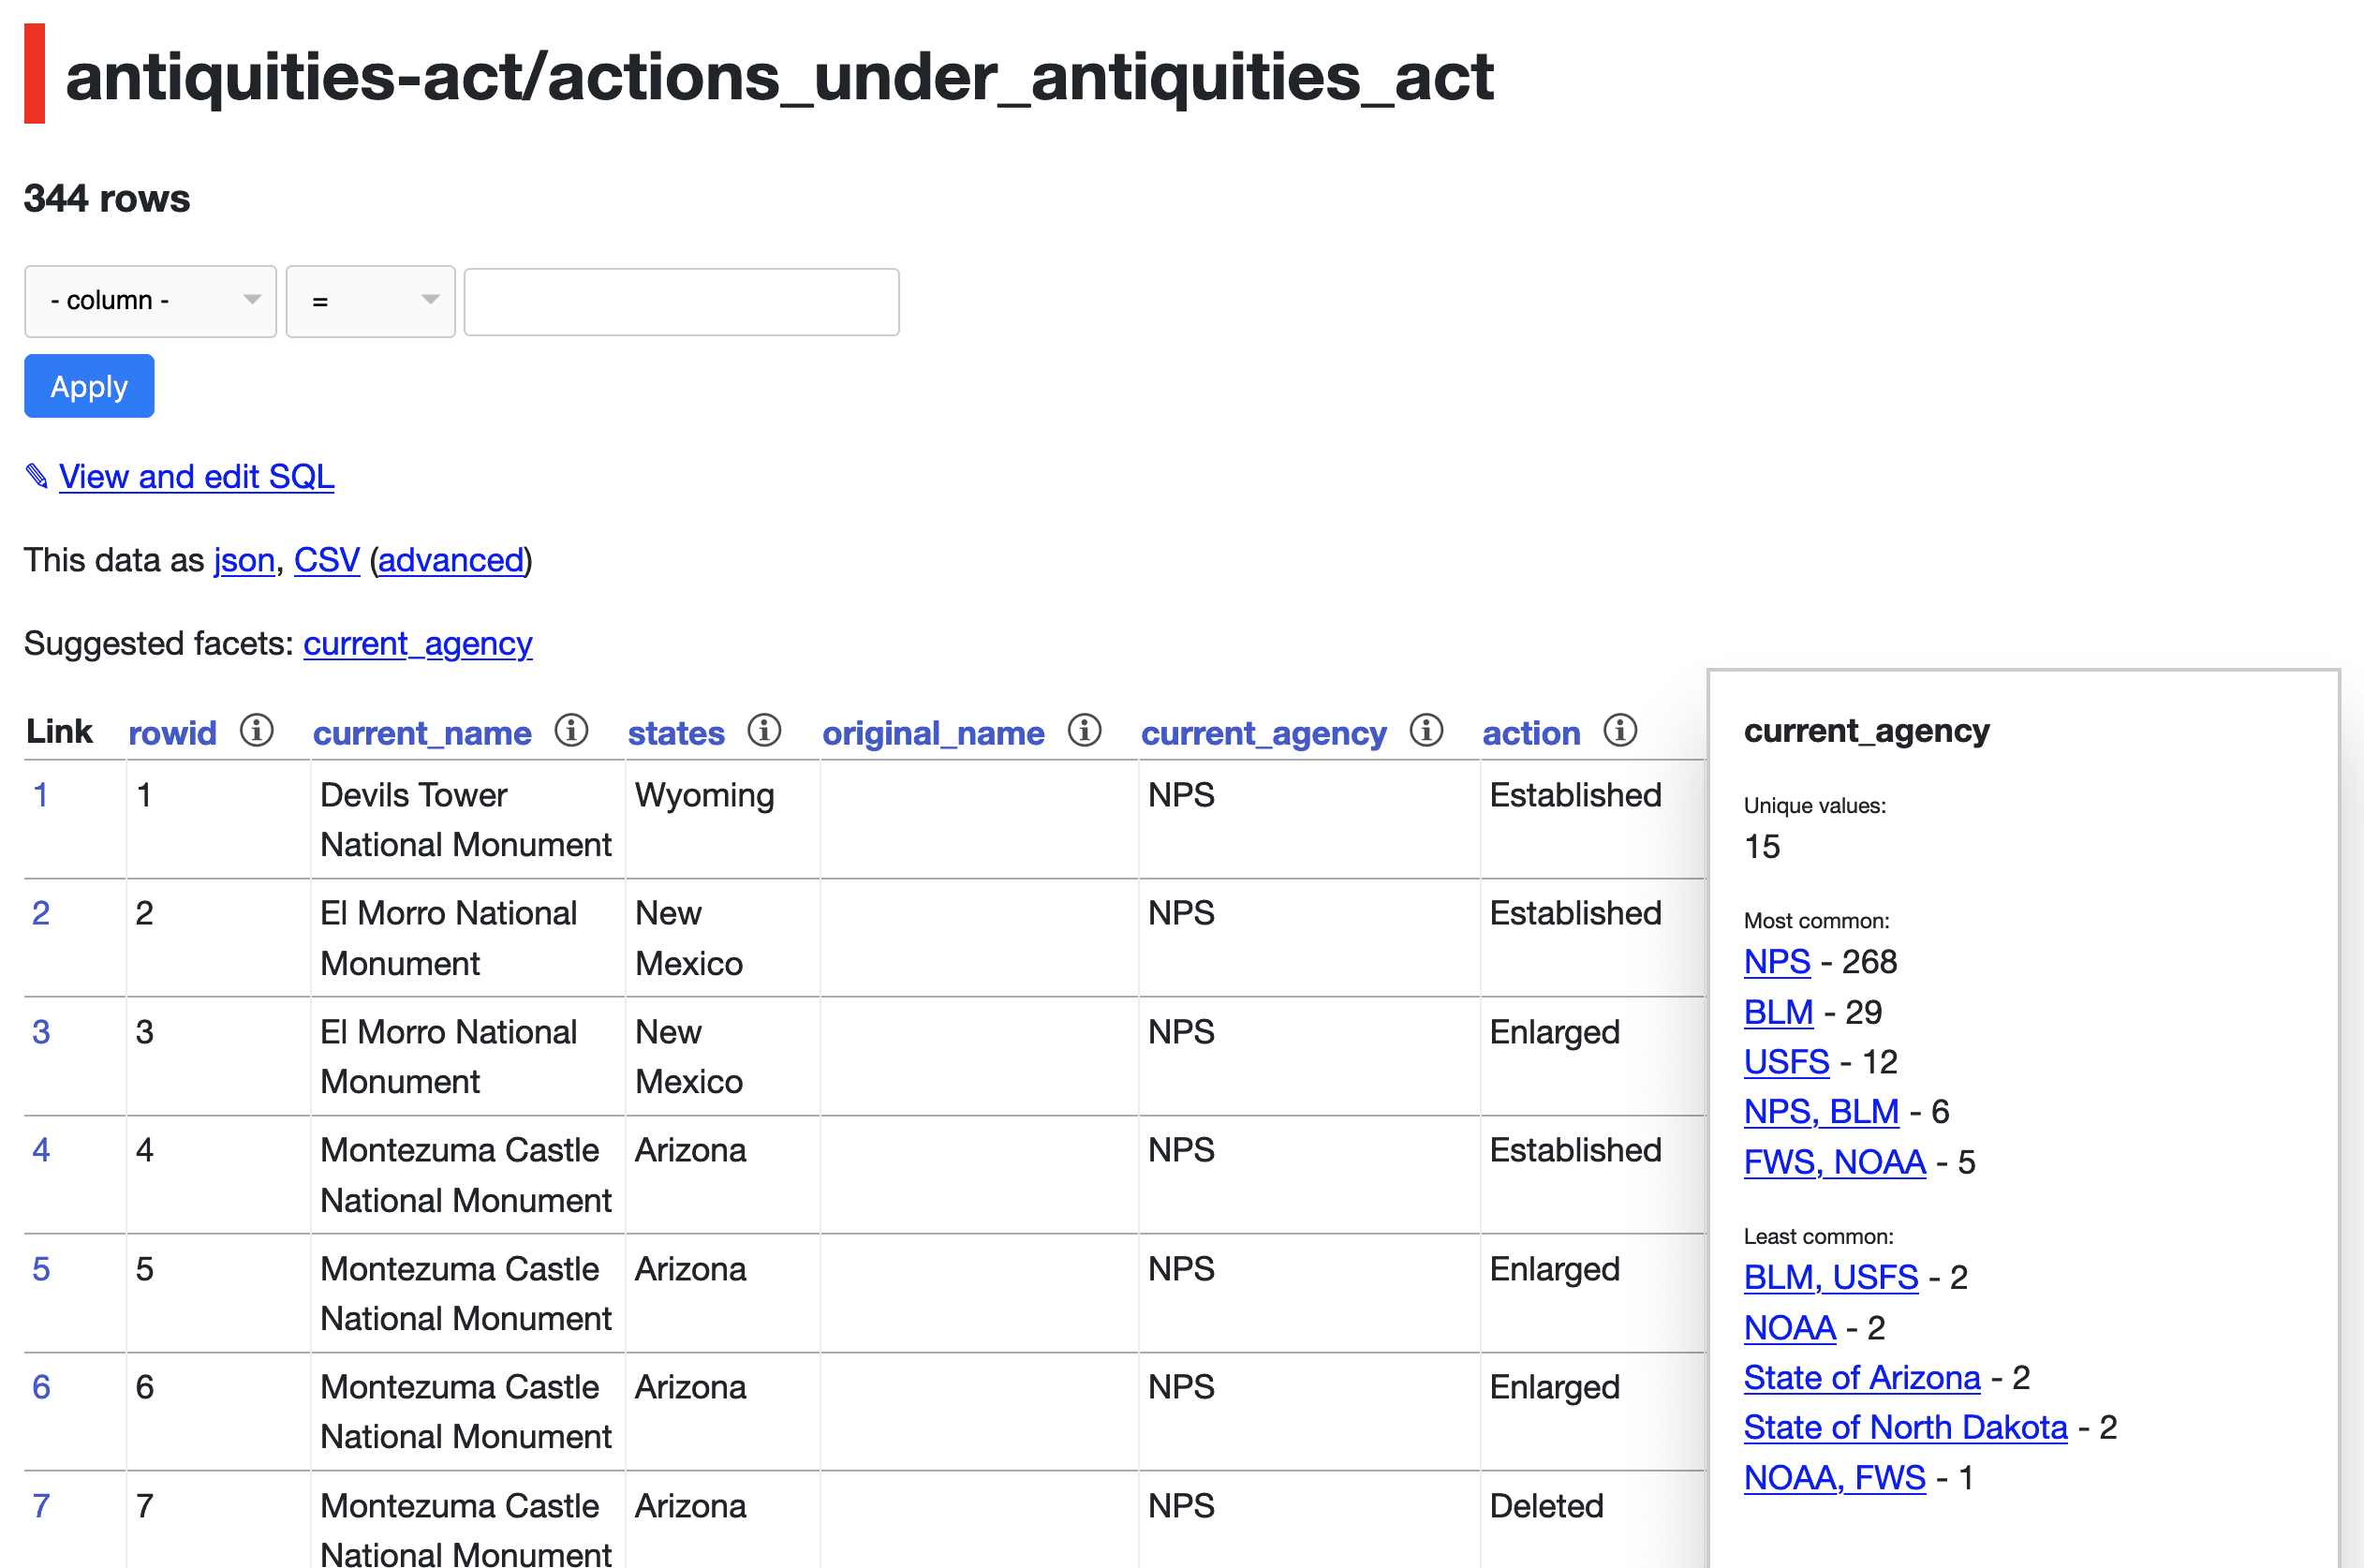 Column summary for states in actions_under_antiquities_act